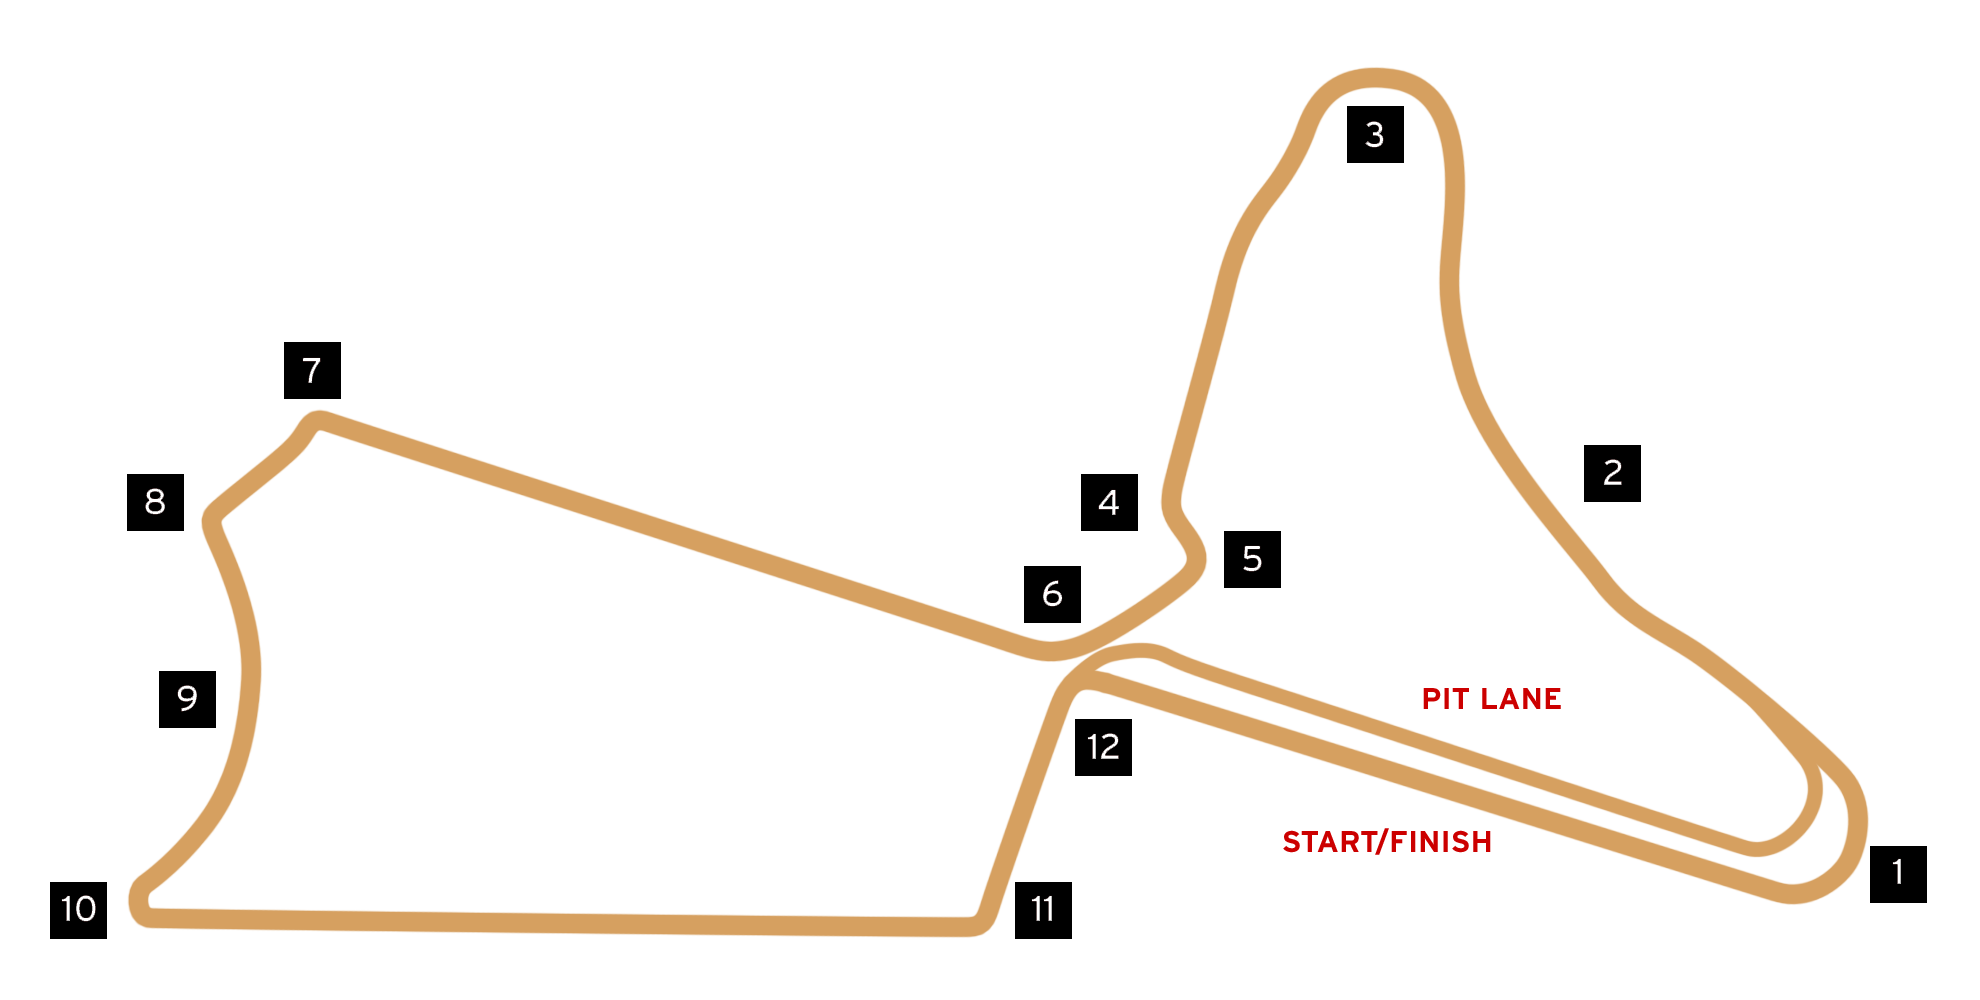 DS TECHEETAH Marrakesh Formula E race track map